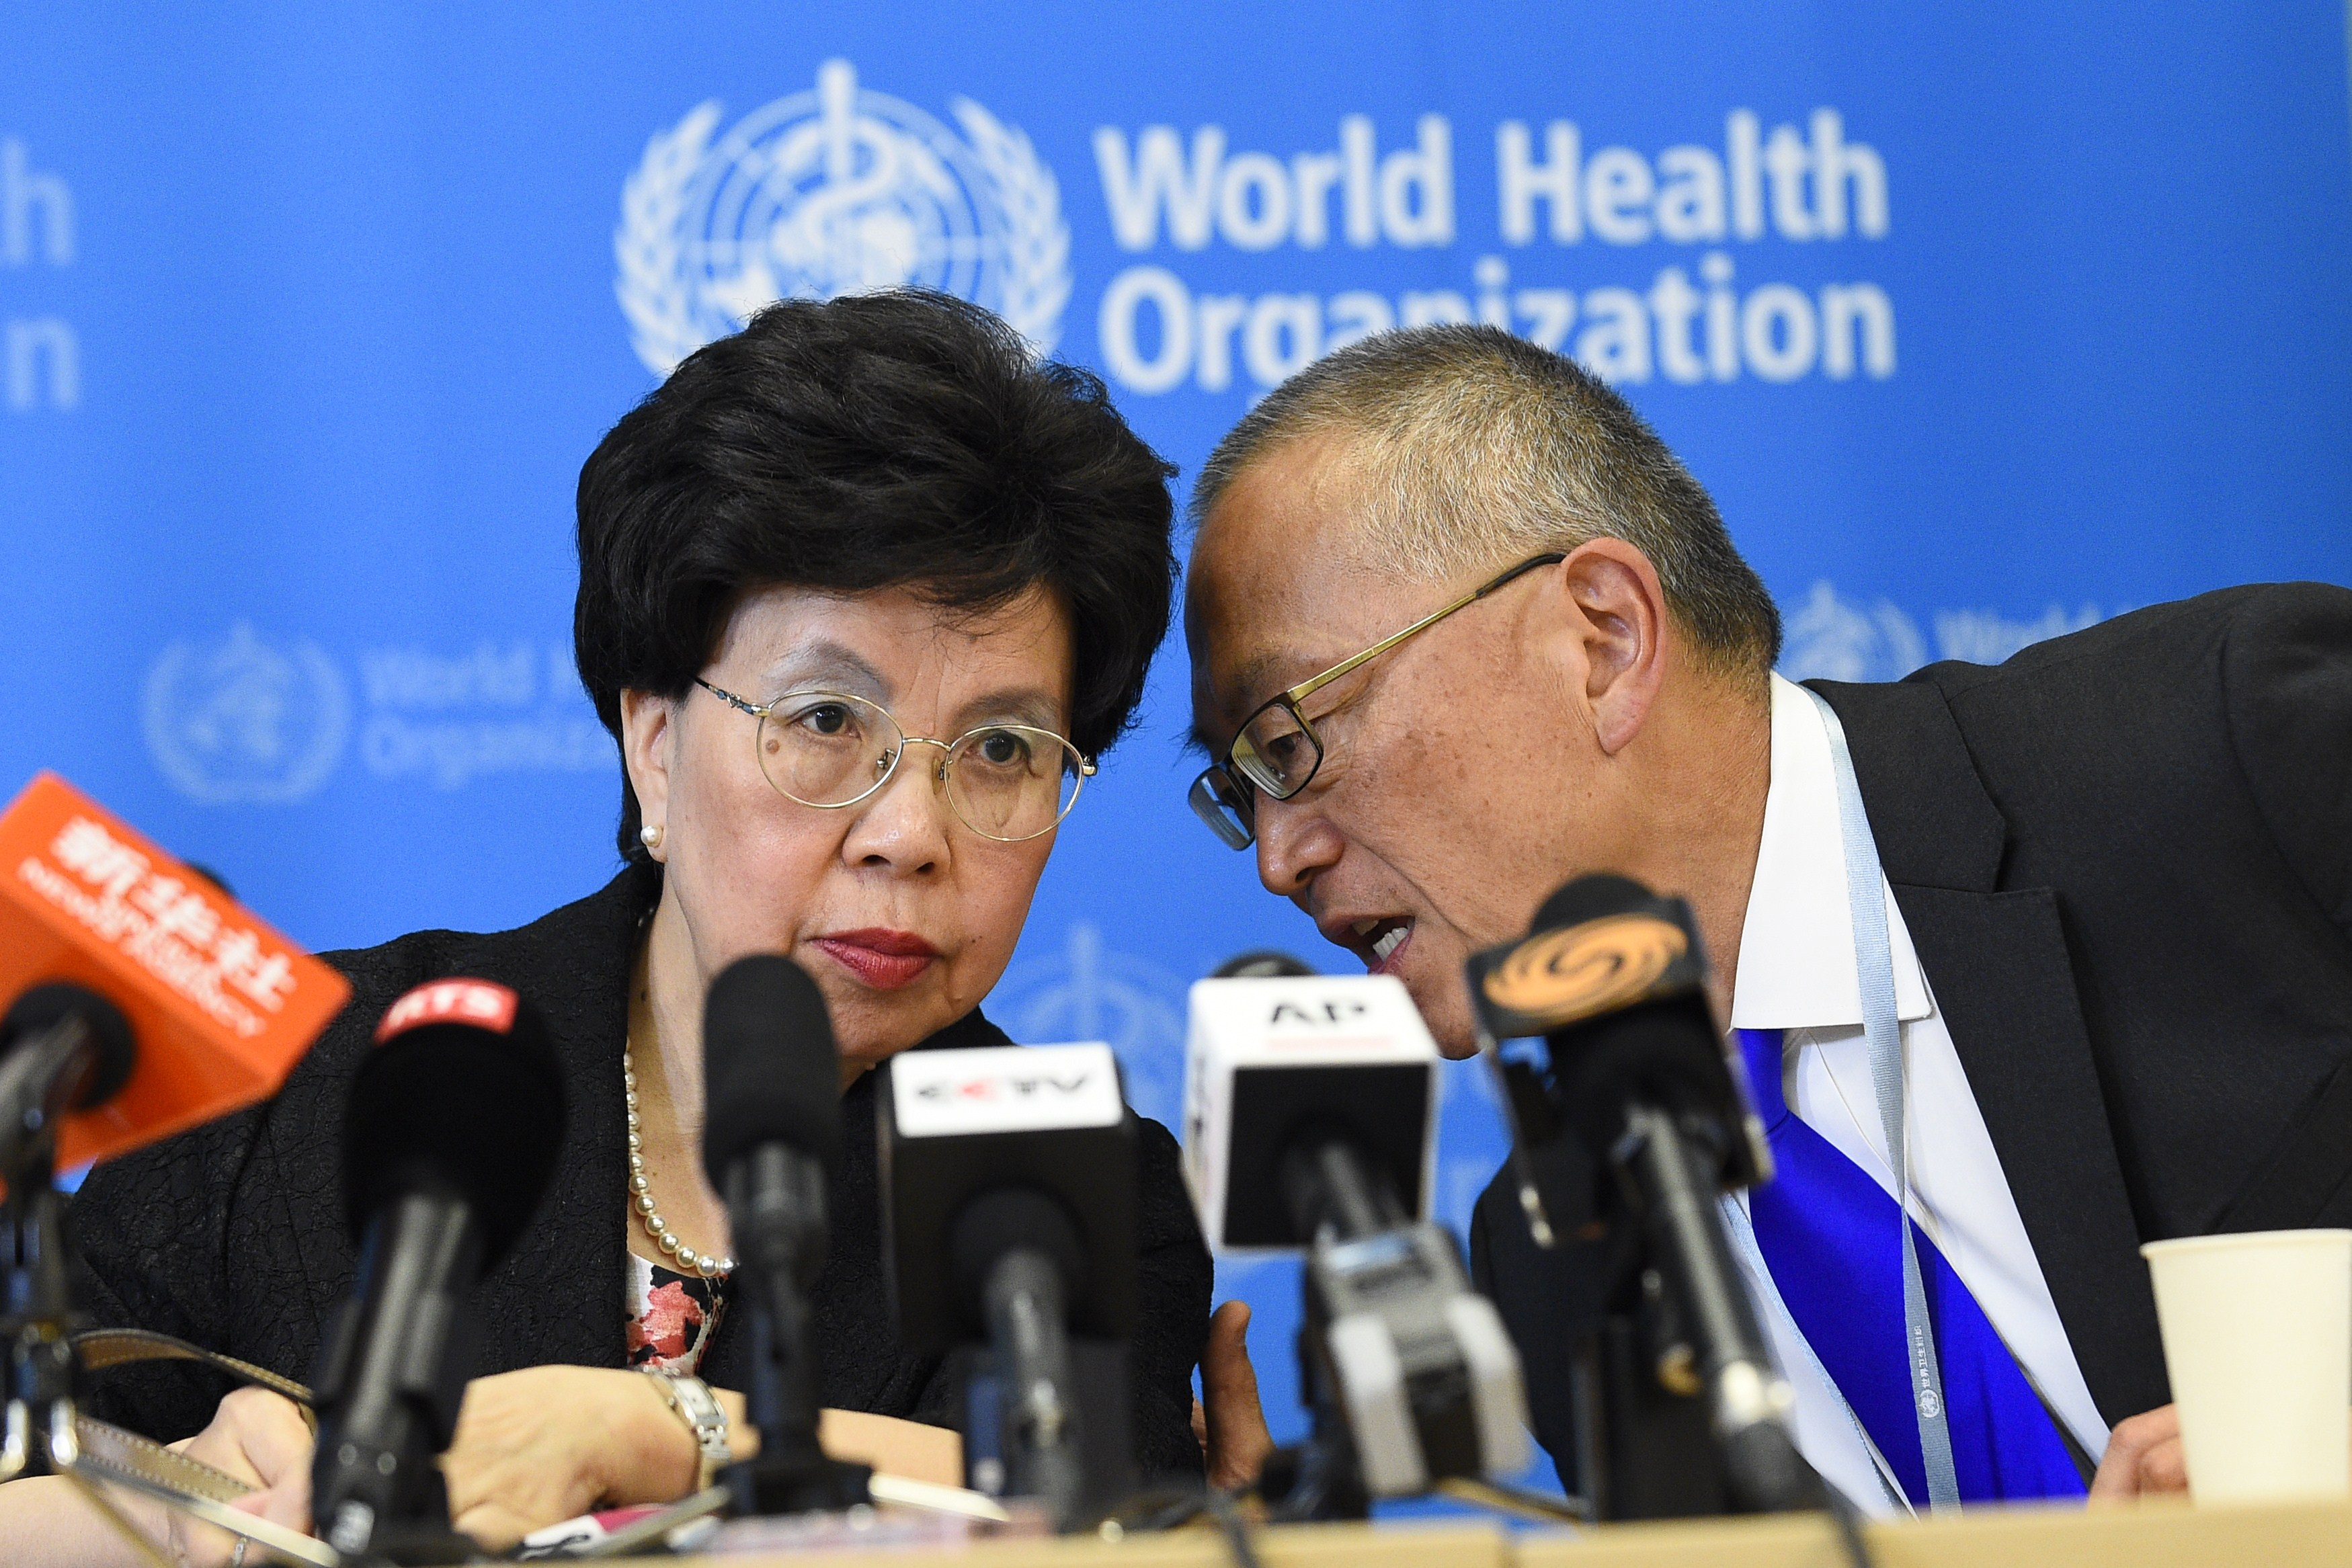 World Health Organization Director-General Dr. Margaret Chan with assistant director-general for health security Keiji Fukuda on Aug. 8, 2014 in Geneva.